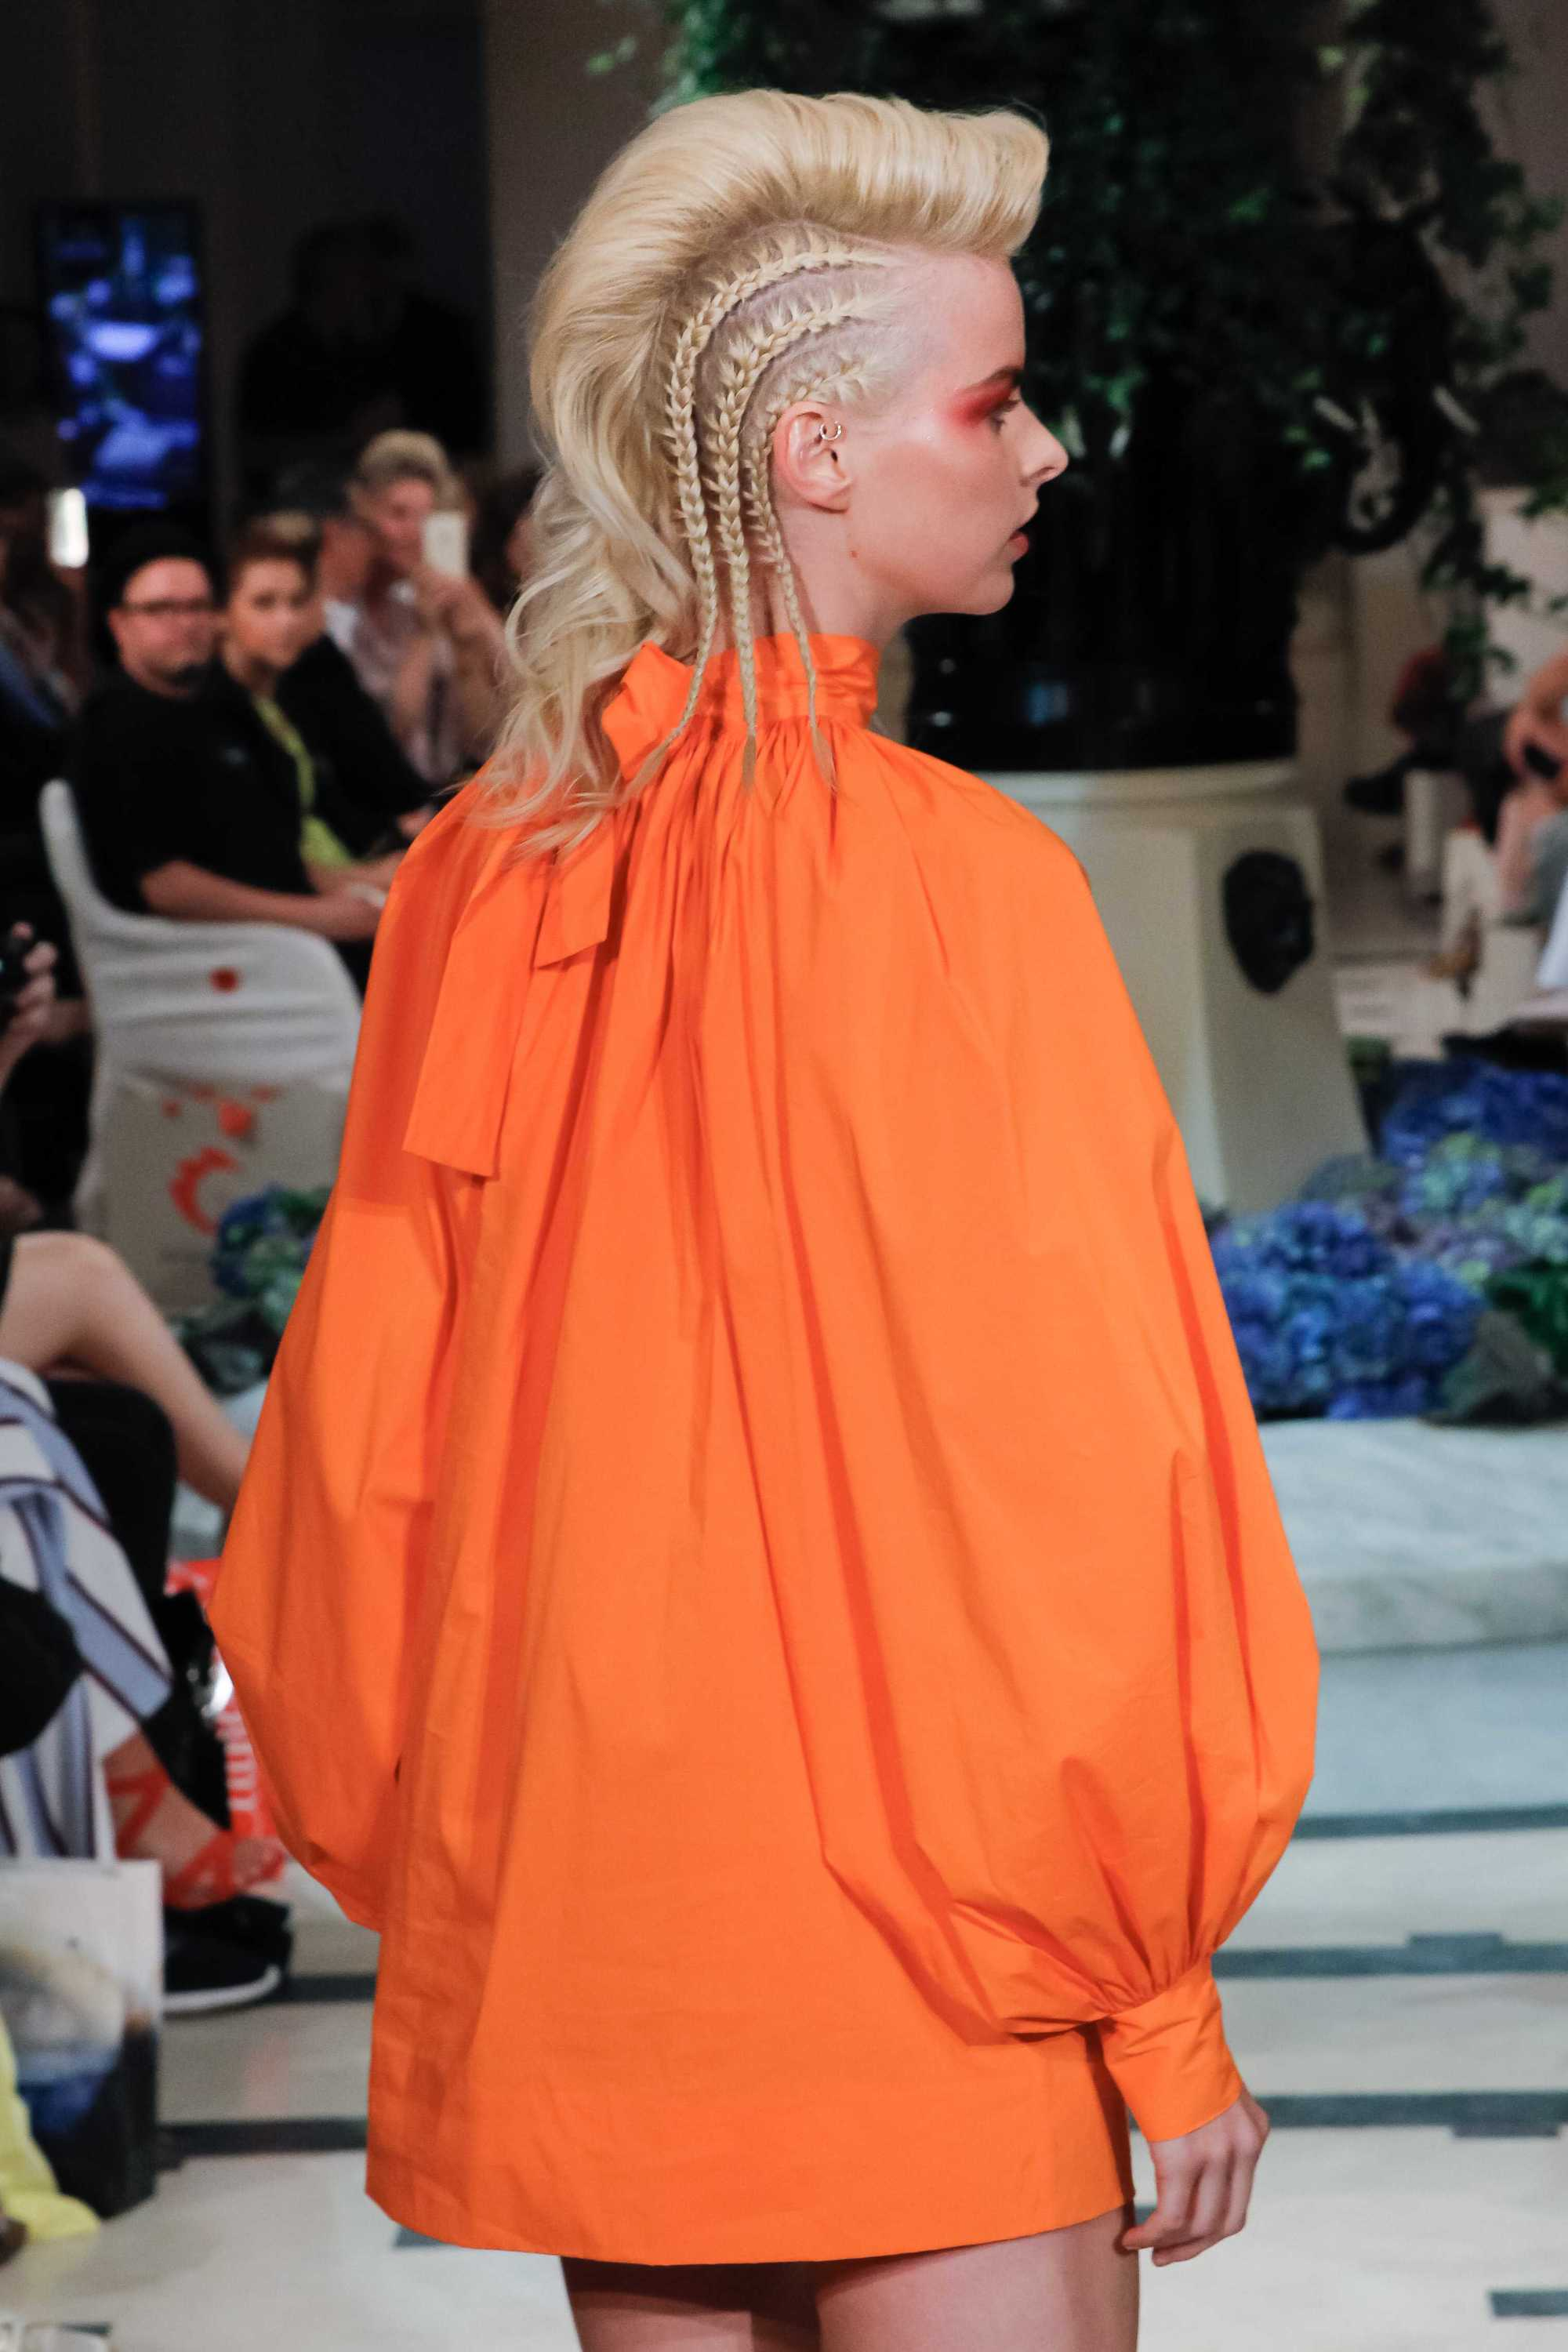 blonde model at the anja gockel show at berlin fashion week with a braided undercut wearing orange